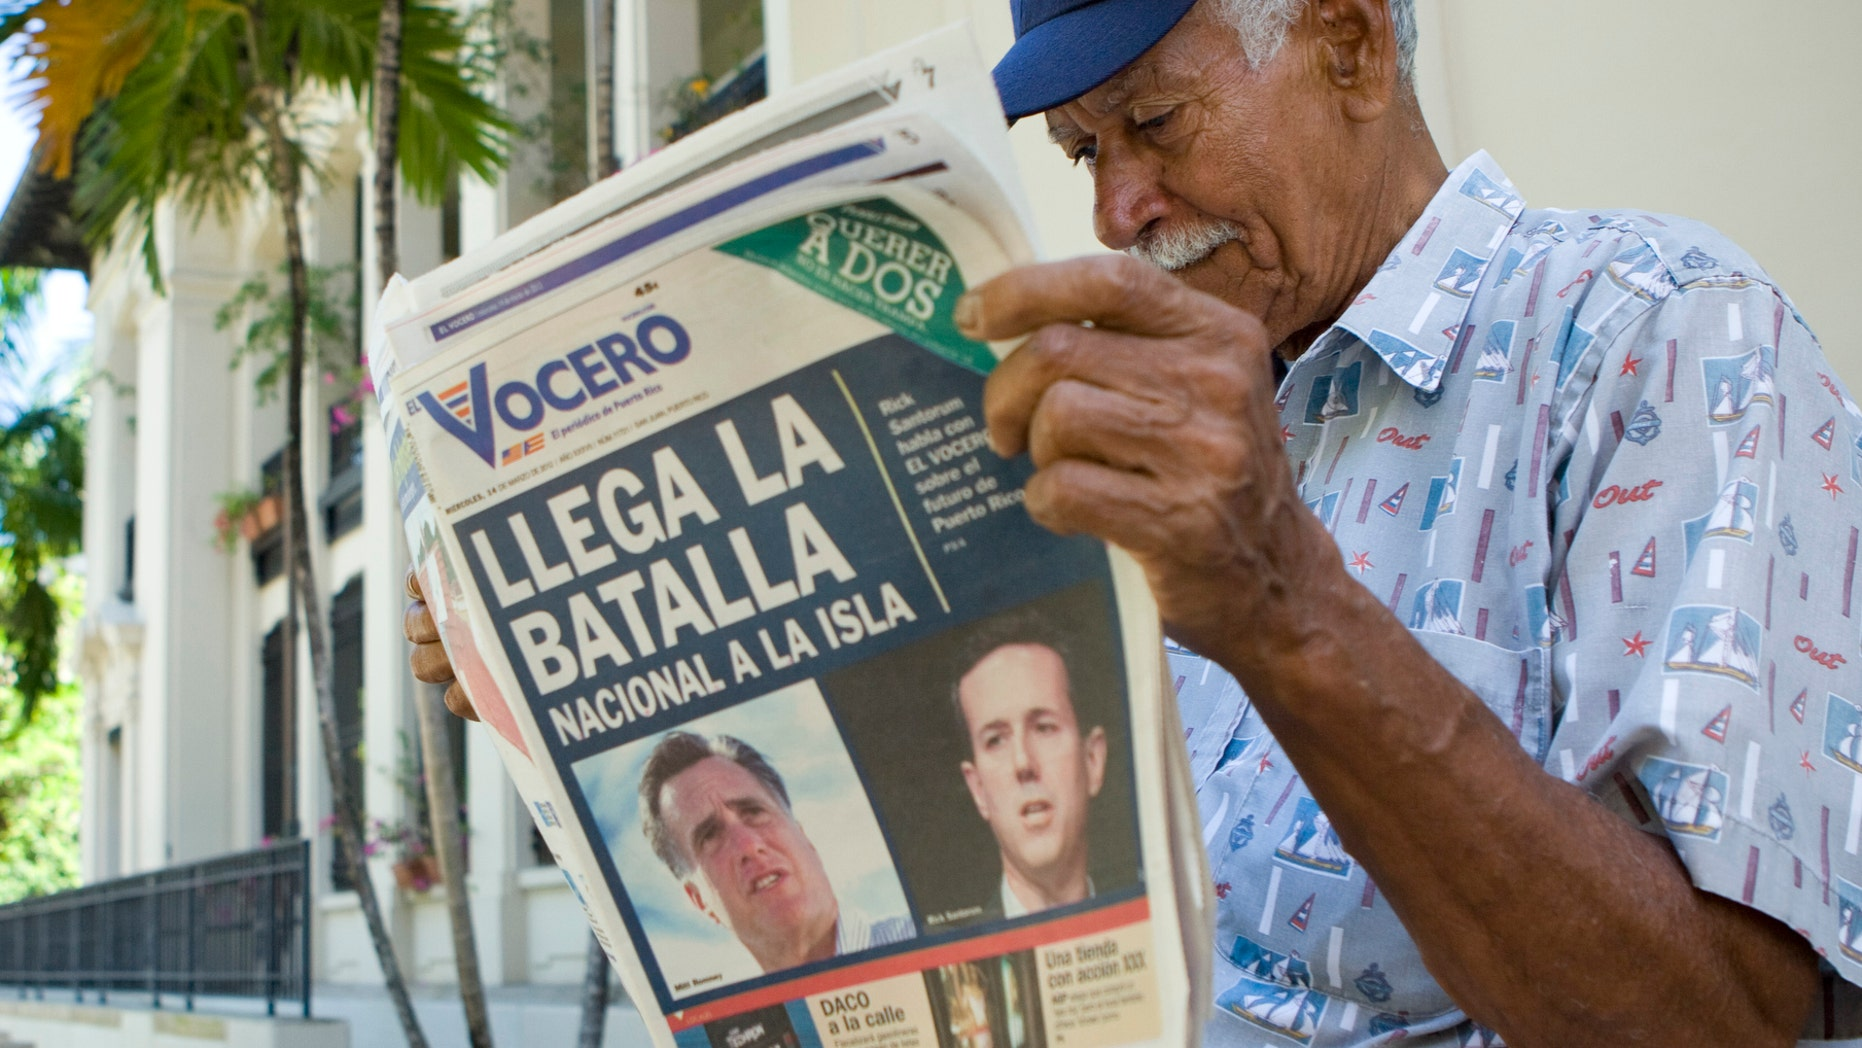 """SAN JUAN, PUERTO RICO - MARCH 14:  Carlos Diaz, 84, reads local newspaper El Vocero with a front page depicting both Mitt Romney and Rick Santorum and a headline reading, """"The National Battle Arrives on the Island.  (Photo by Christopher Gregory/Getty Images)"""